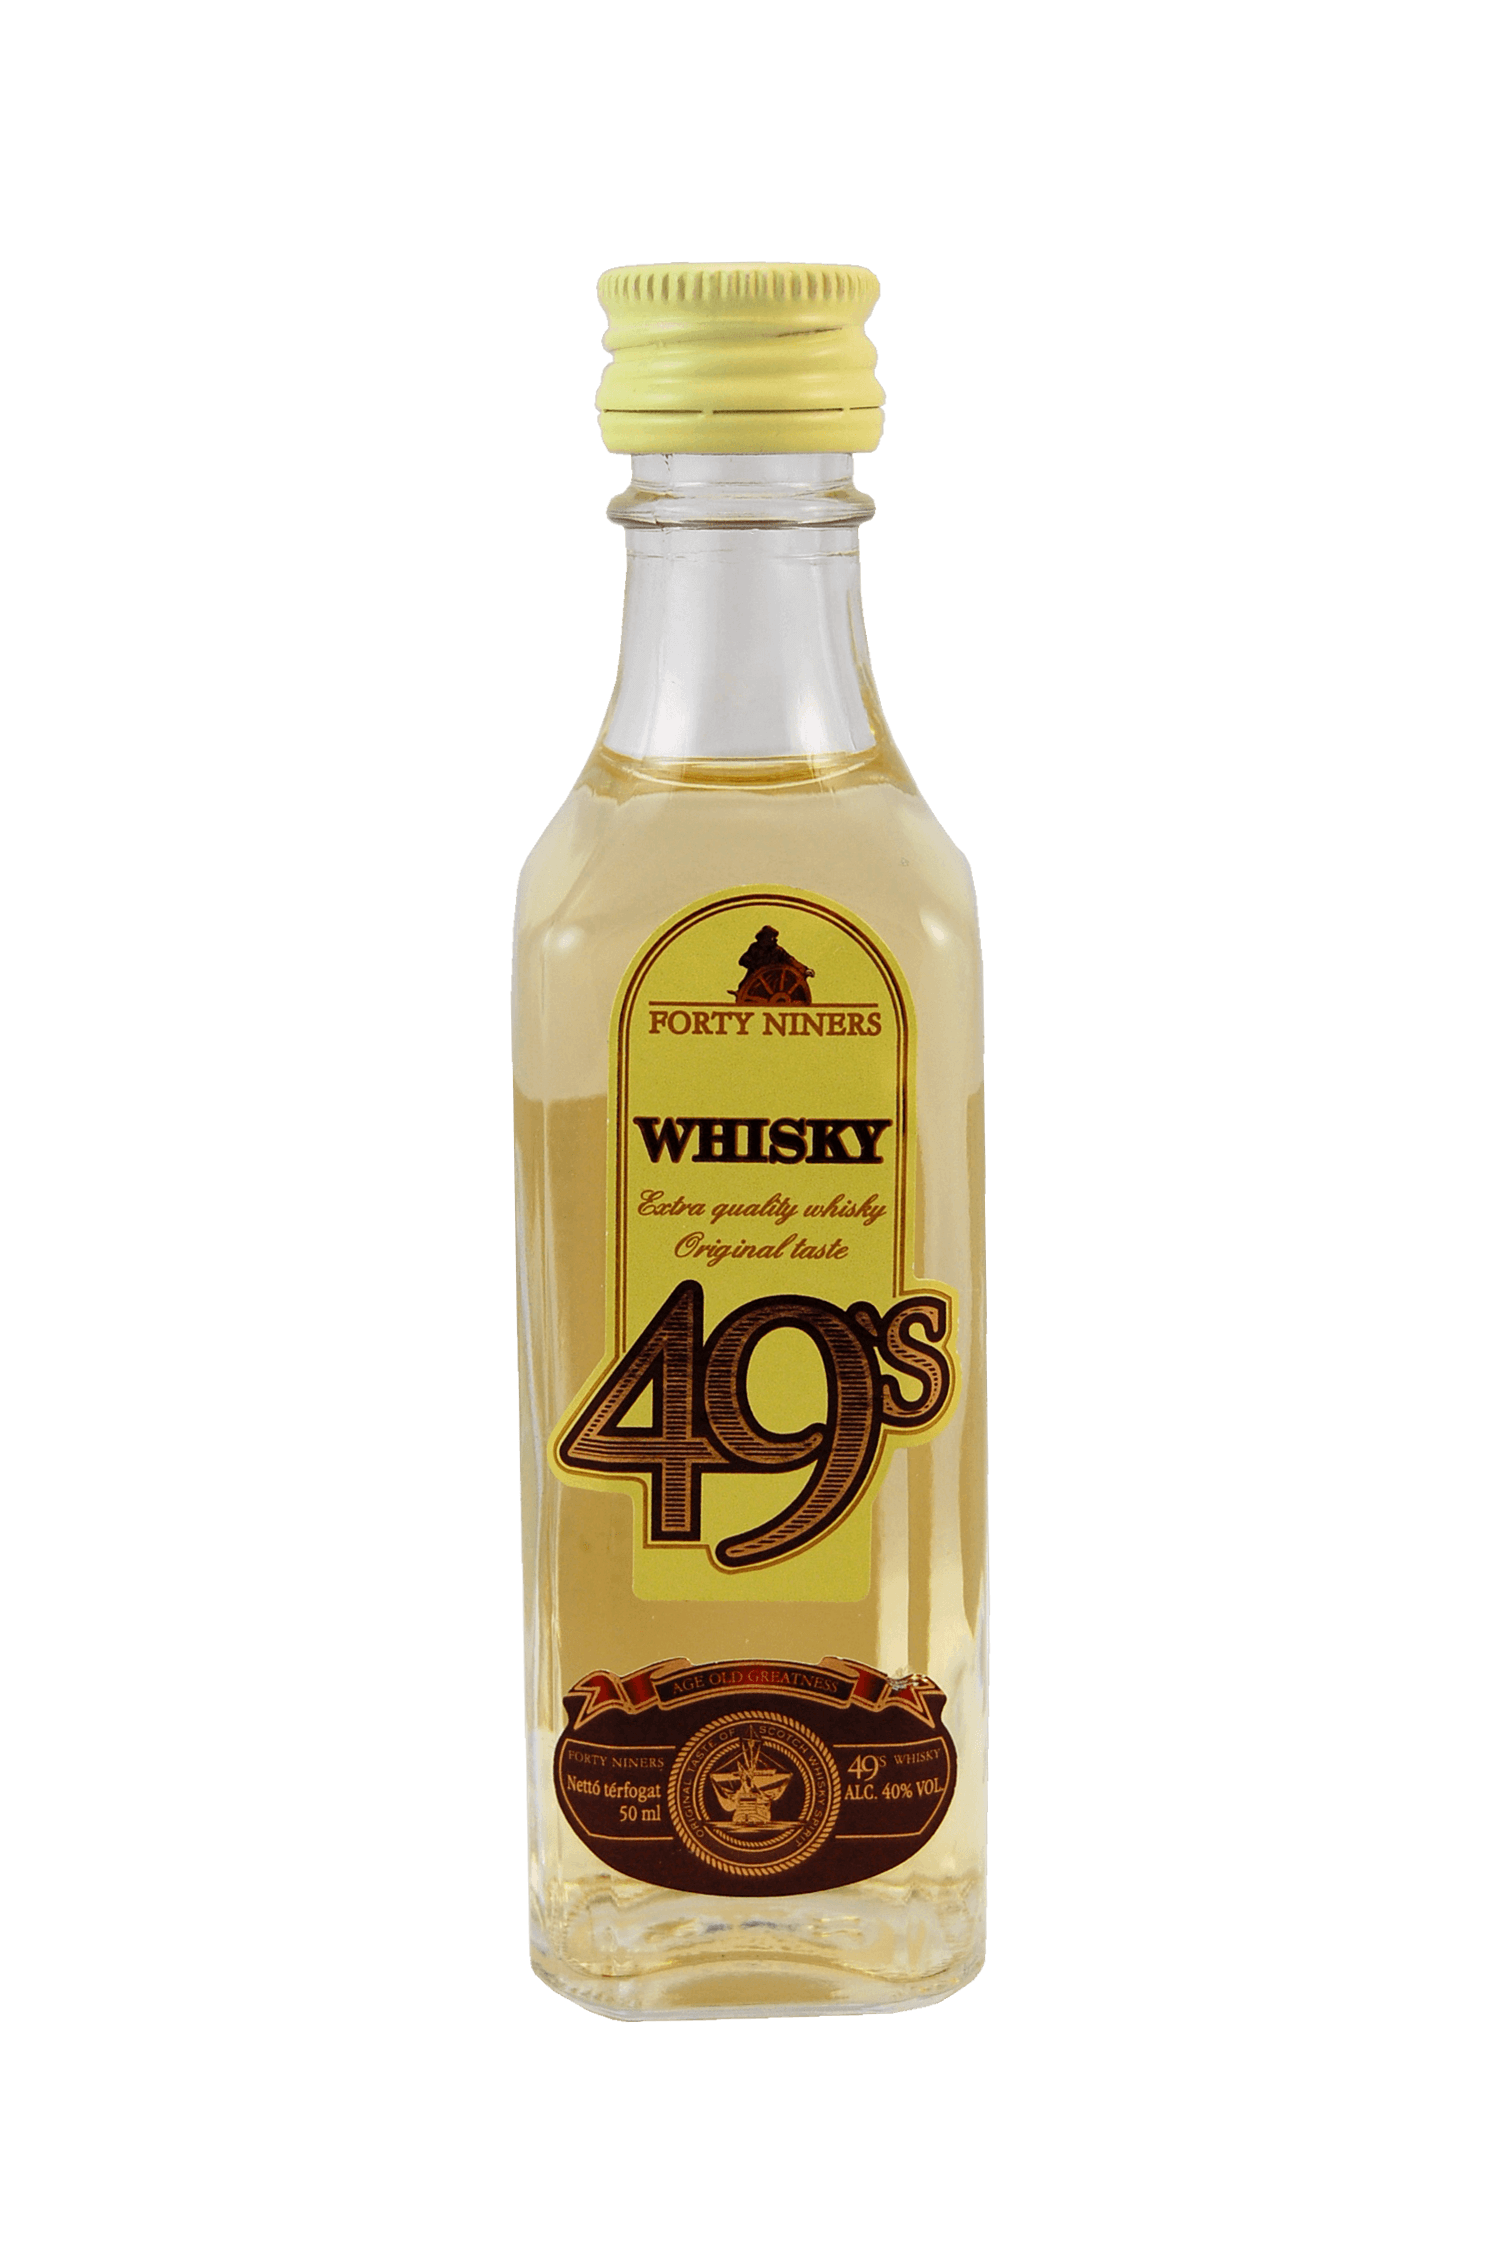 Forty Niners Whisky